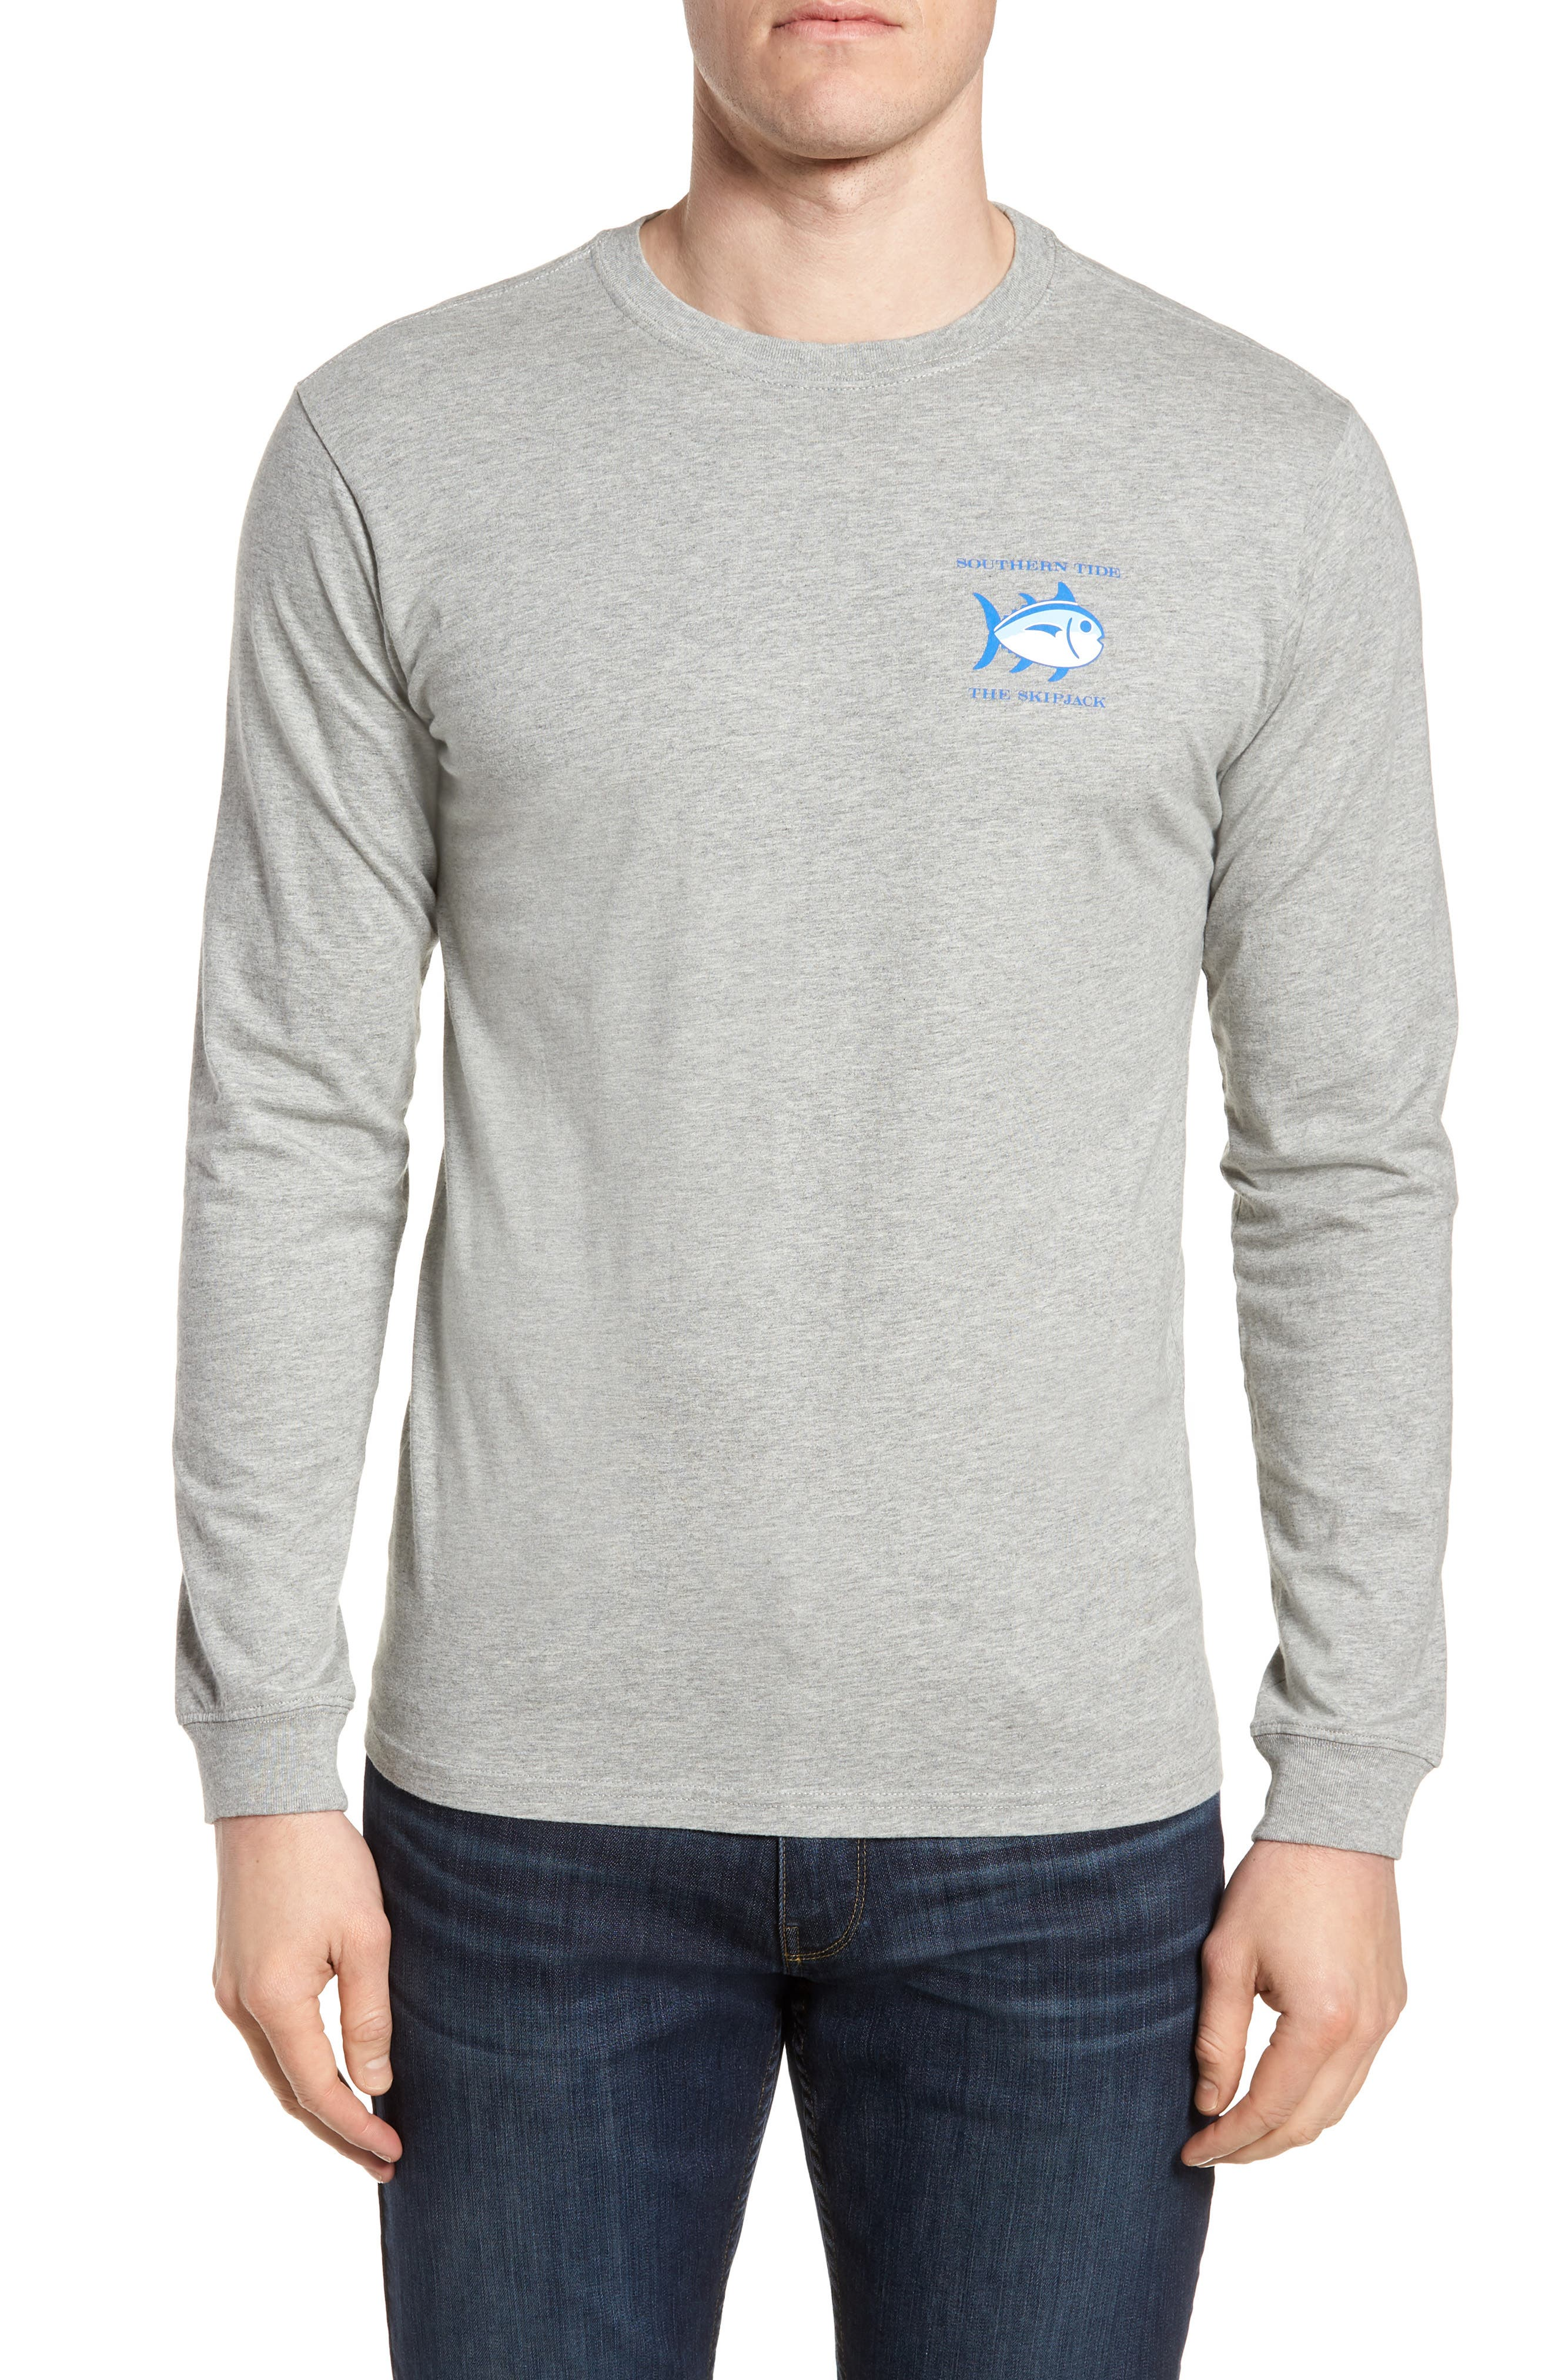 SOUTHERN TIDE Original Skipjack T-Shirt in Grey